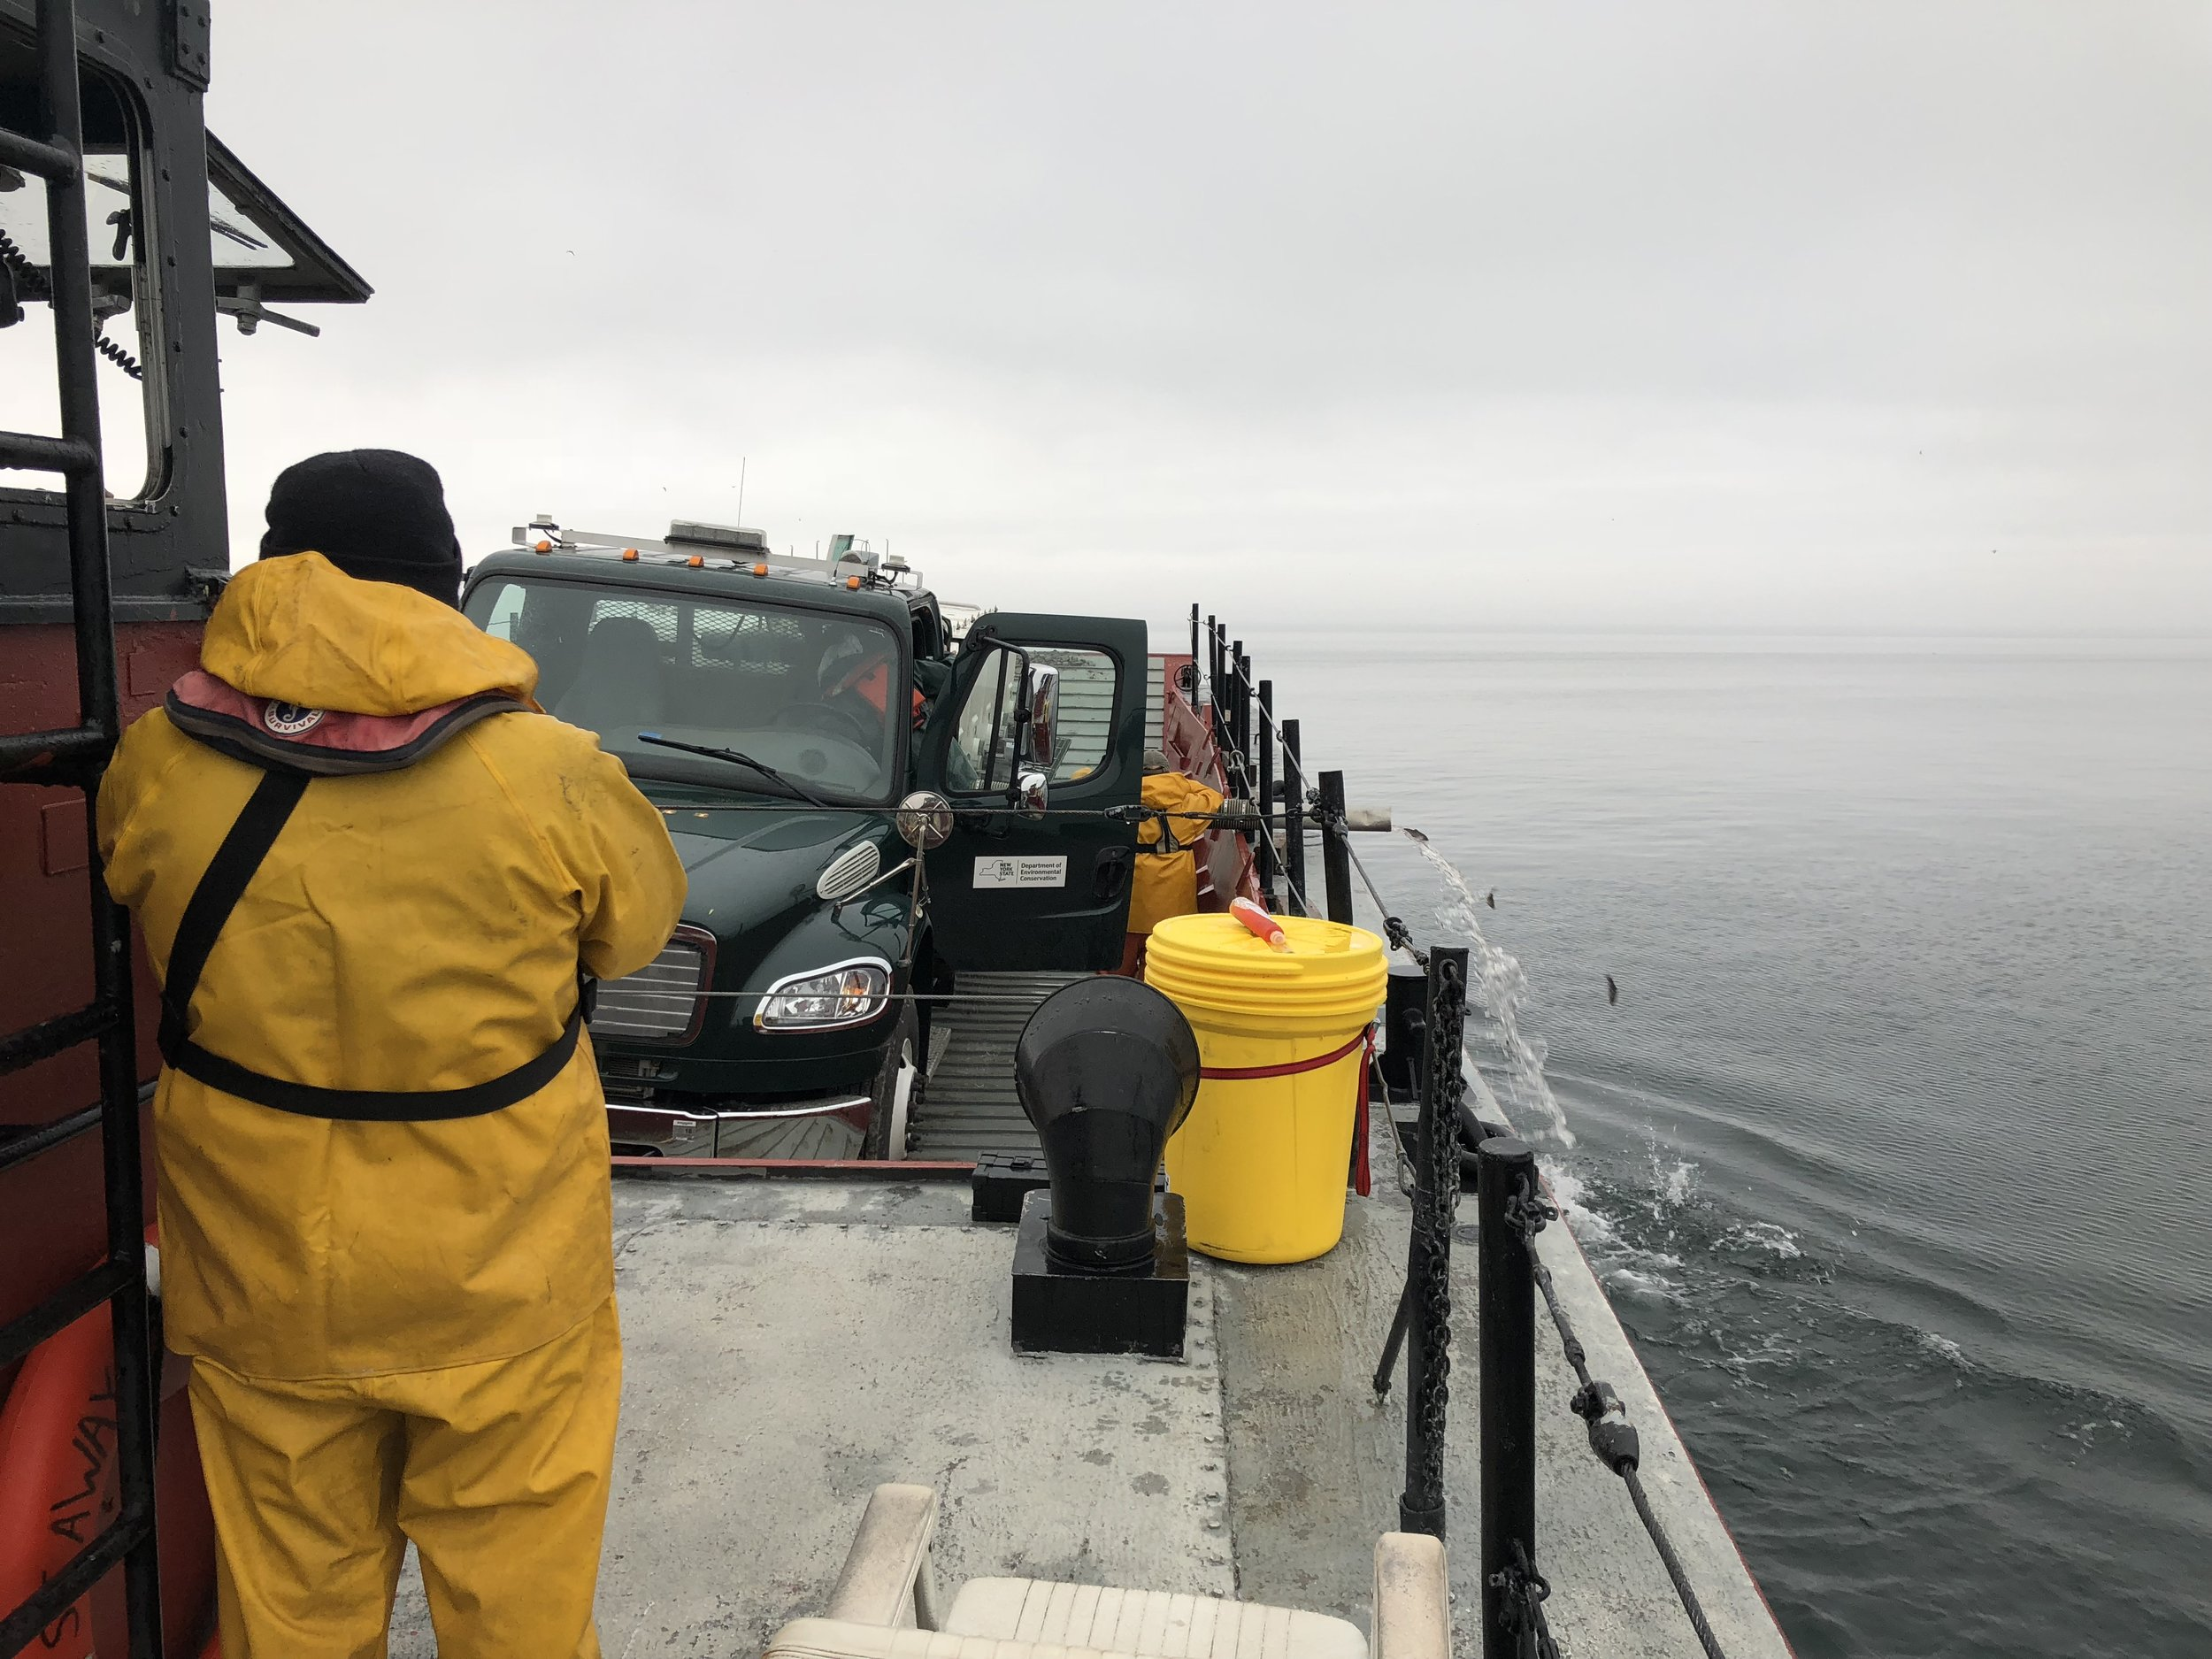 Marine transportation, fish stocking, Lake Ontario, Department of Environmental Conservation, Seaway Marine Group